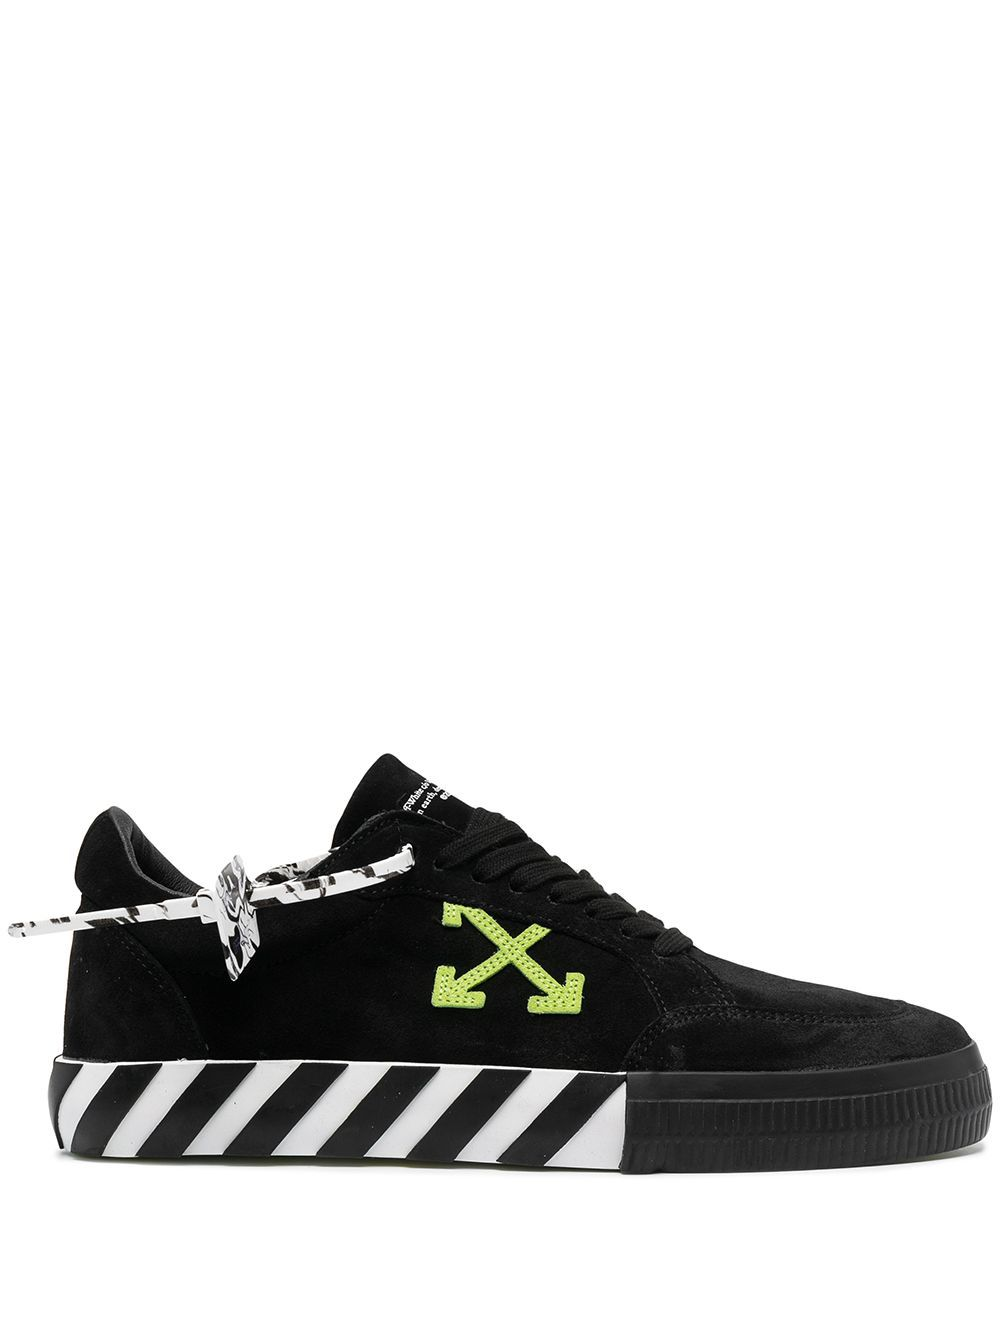 OFF-WHITE Low Vulcanized Suede Sneakers Black/Green